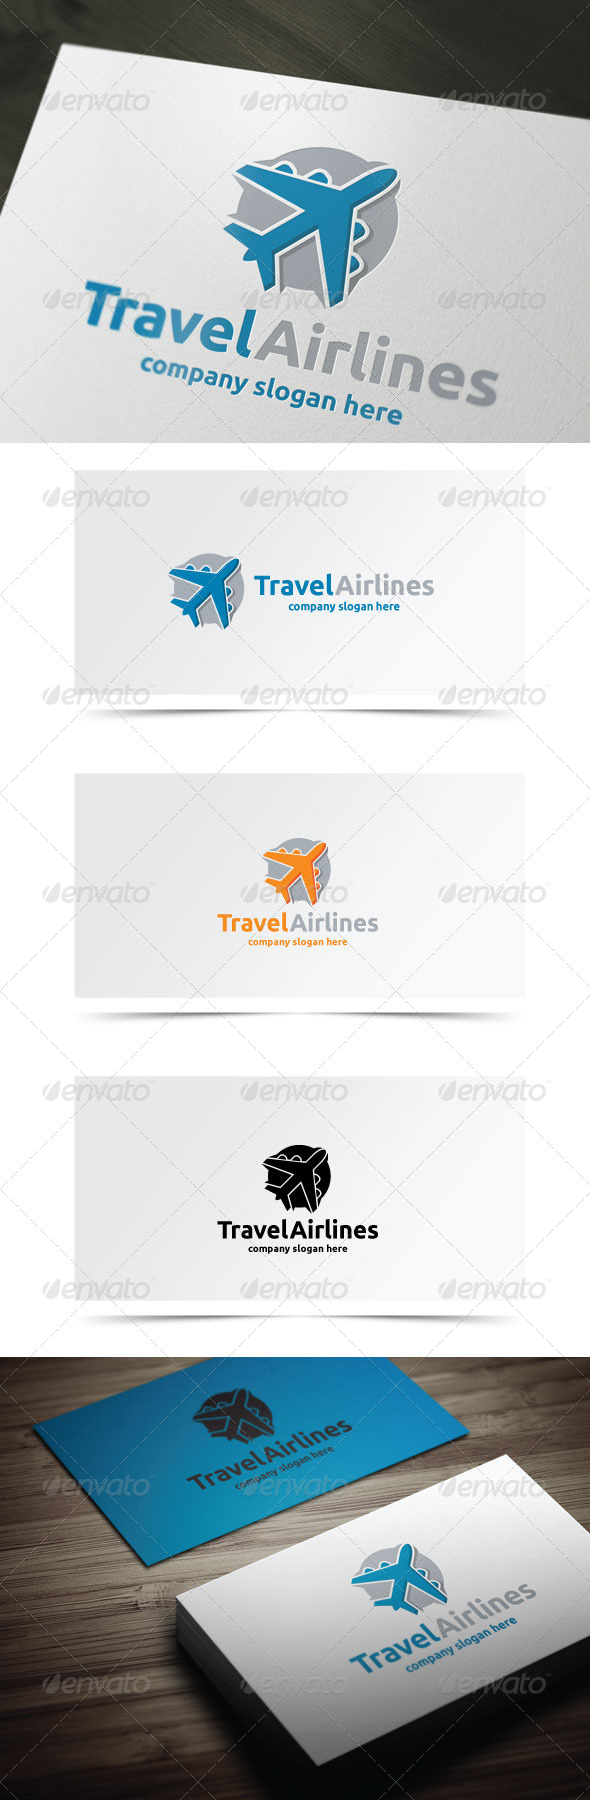 GraphicRiver Travel Airlines 7584457